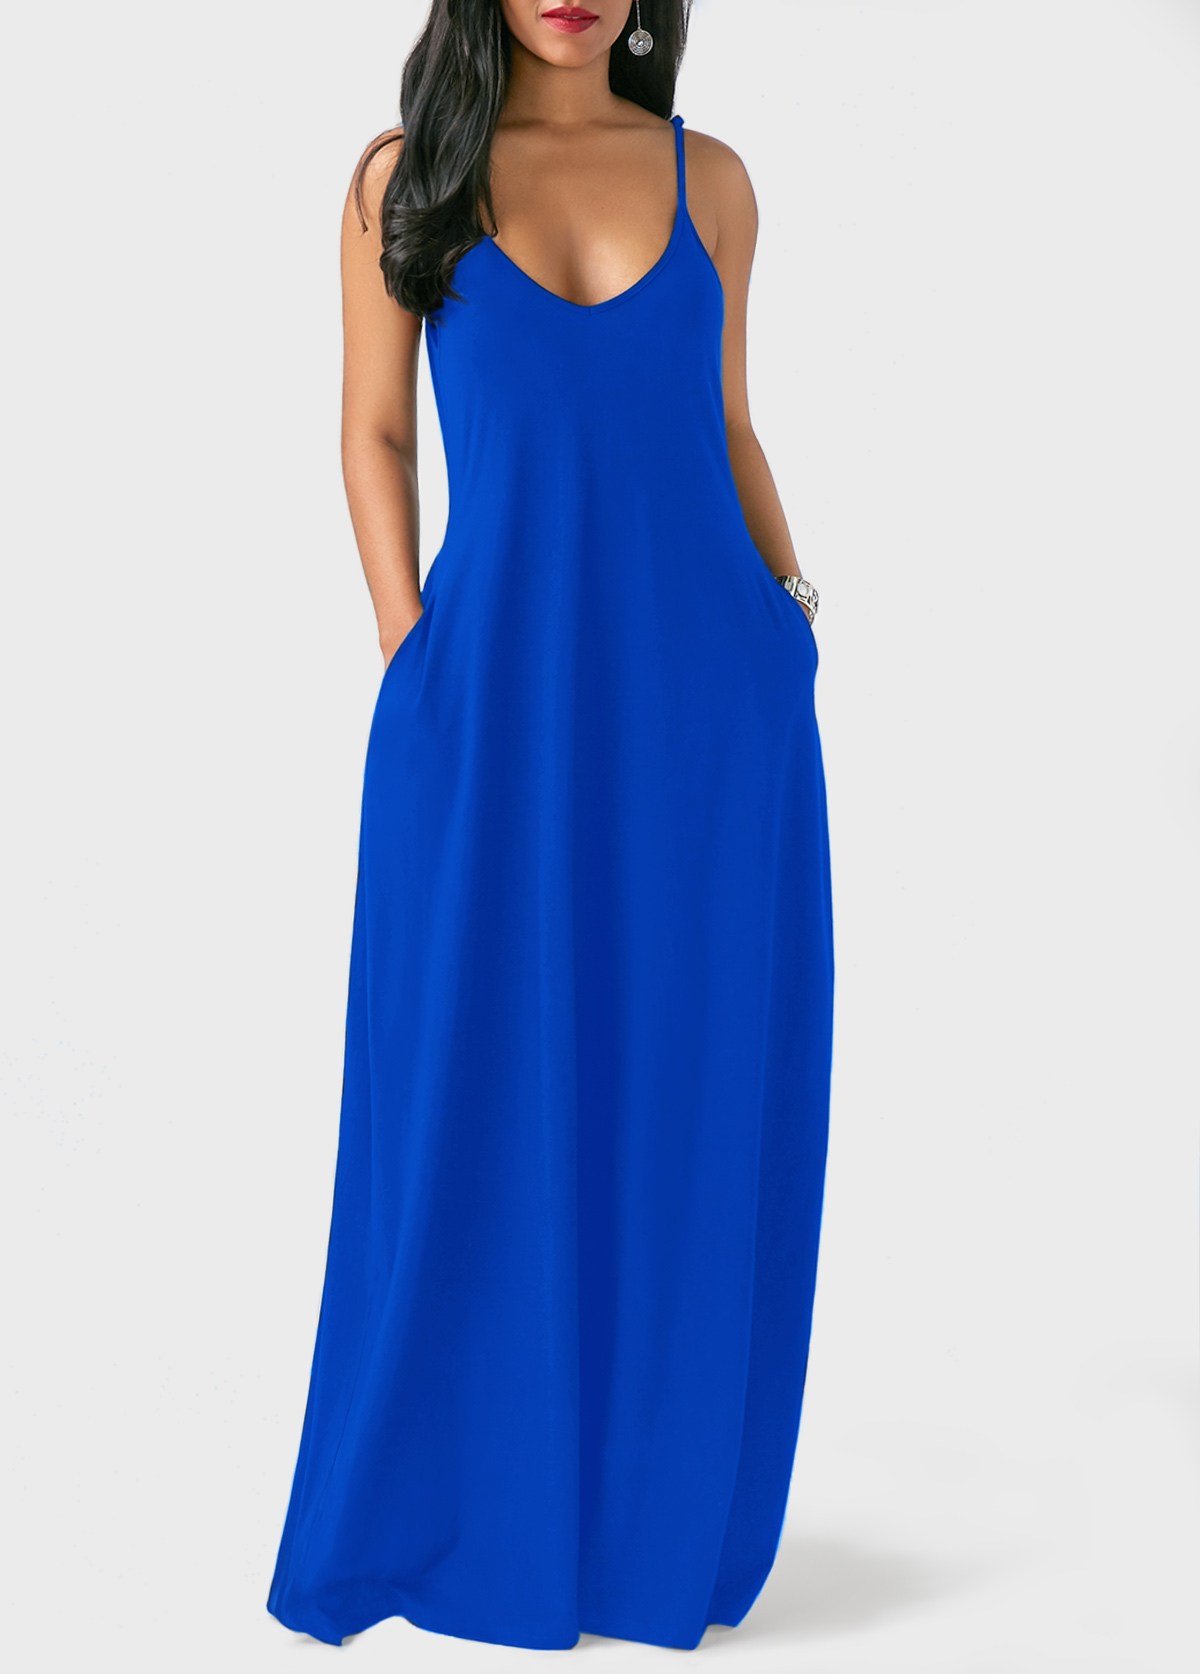 8aa3f72cc66 Open Back Pocket Decorated Royal Blue Dress